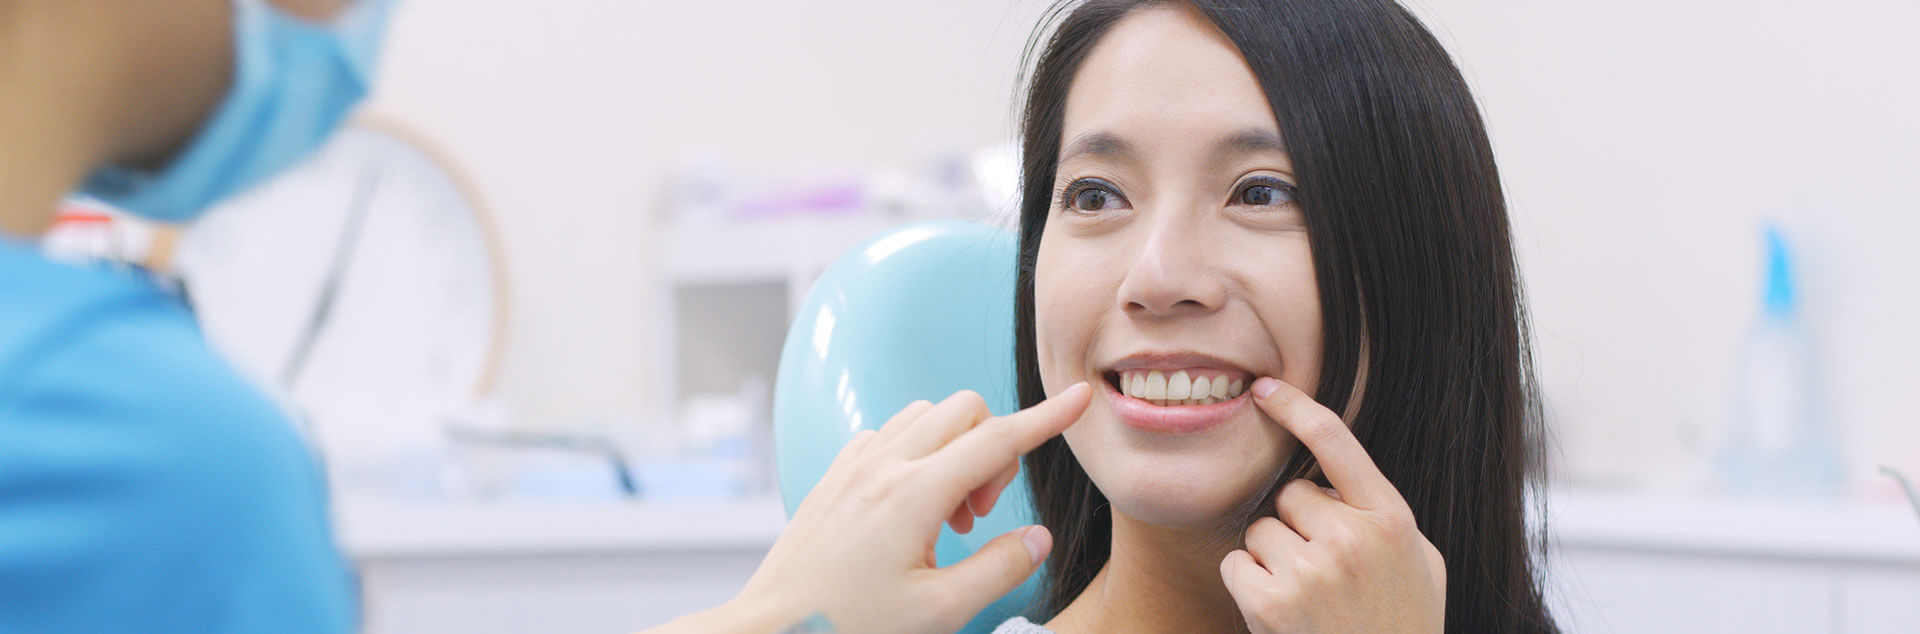 Young female patient pointing at her dental implants